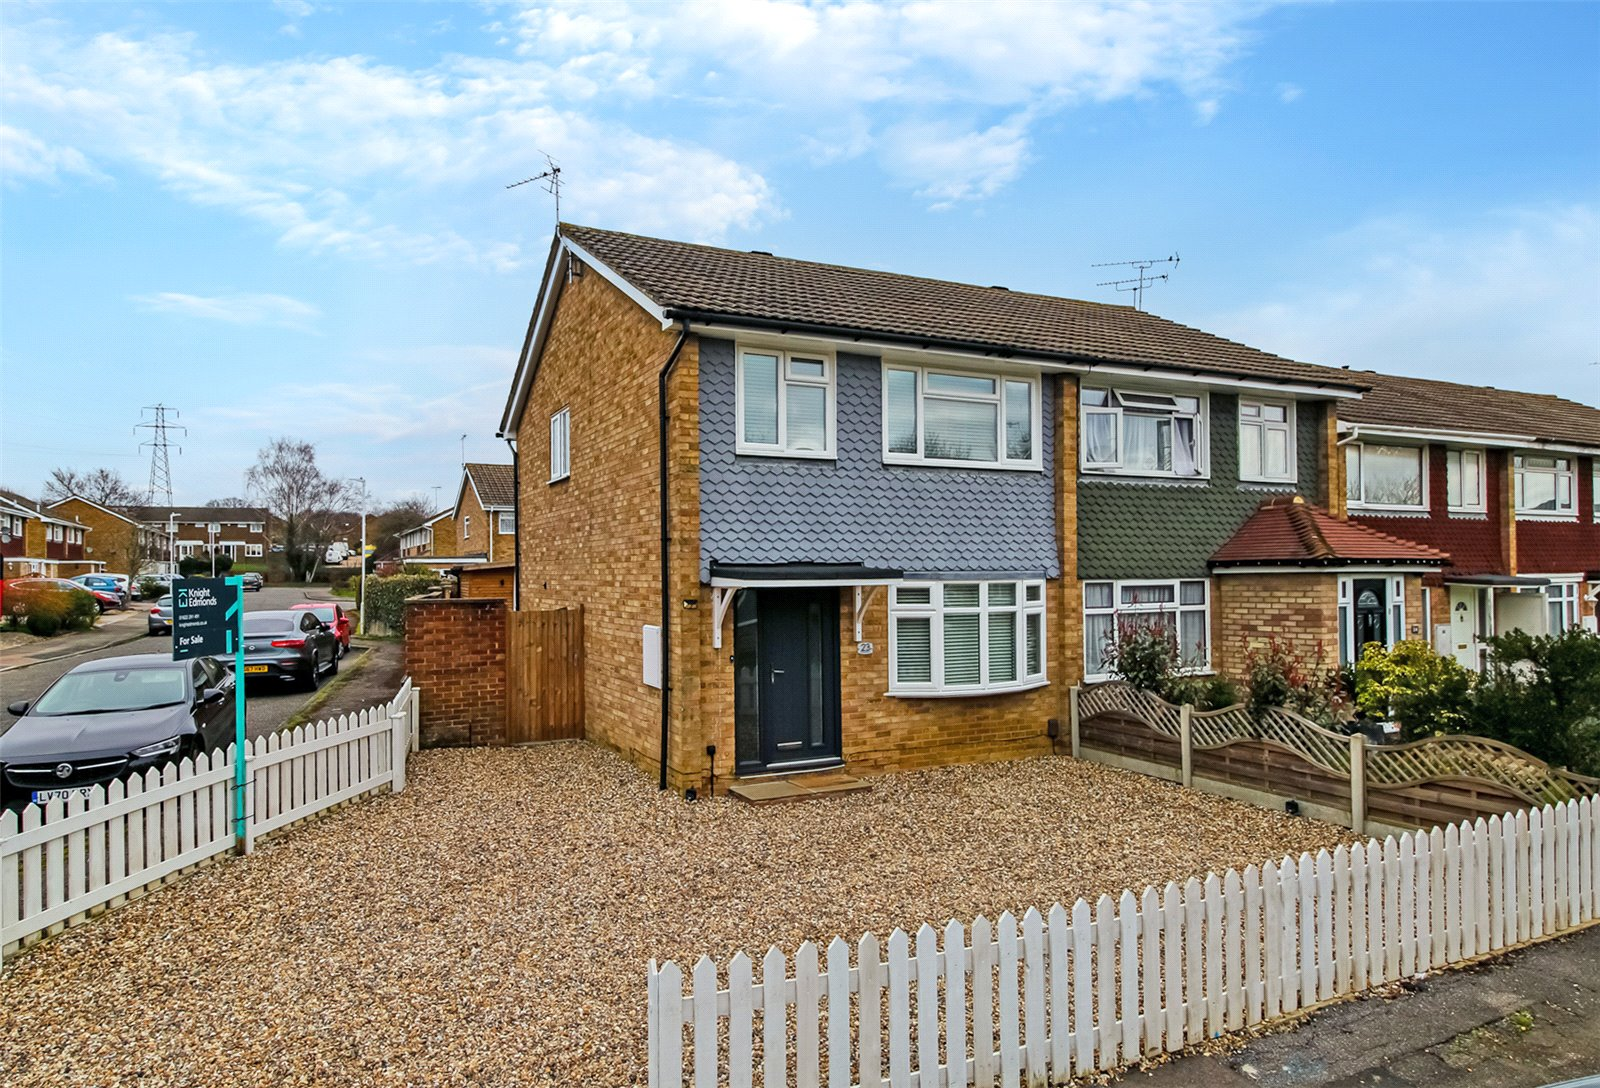 3 bed house for sale in Cudham Close, Vinters Park 0